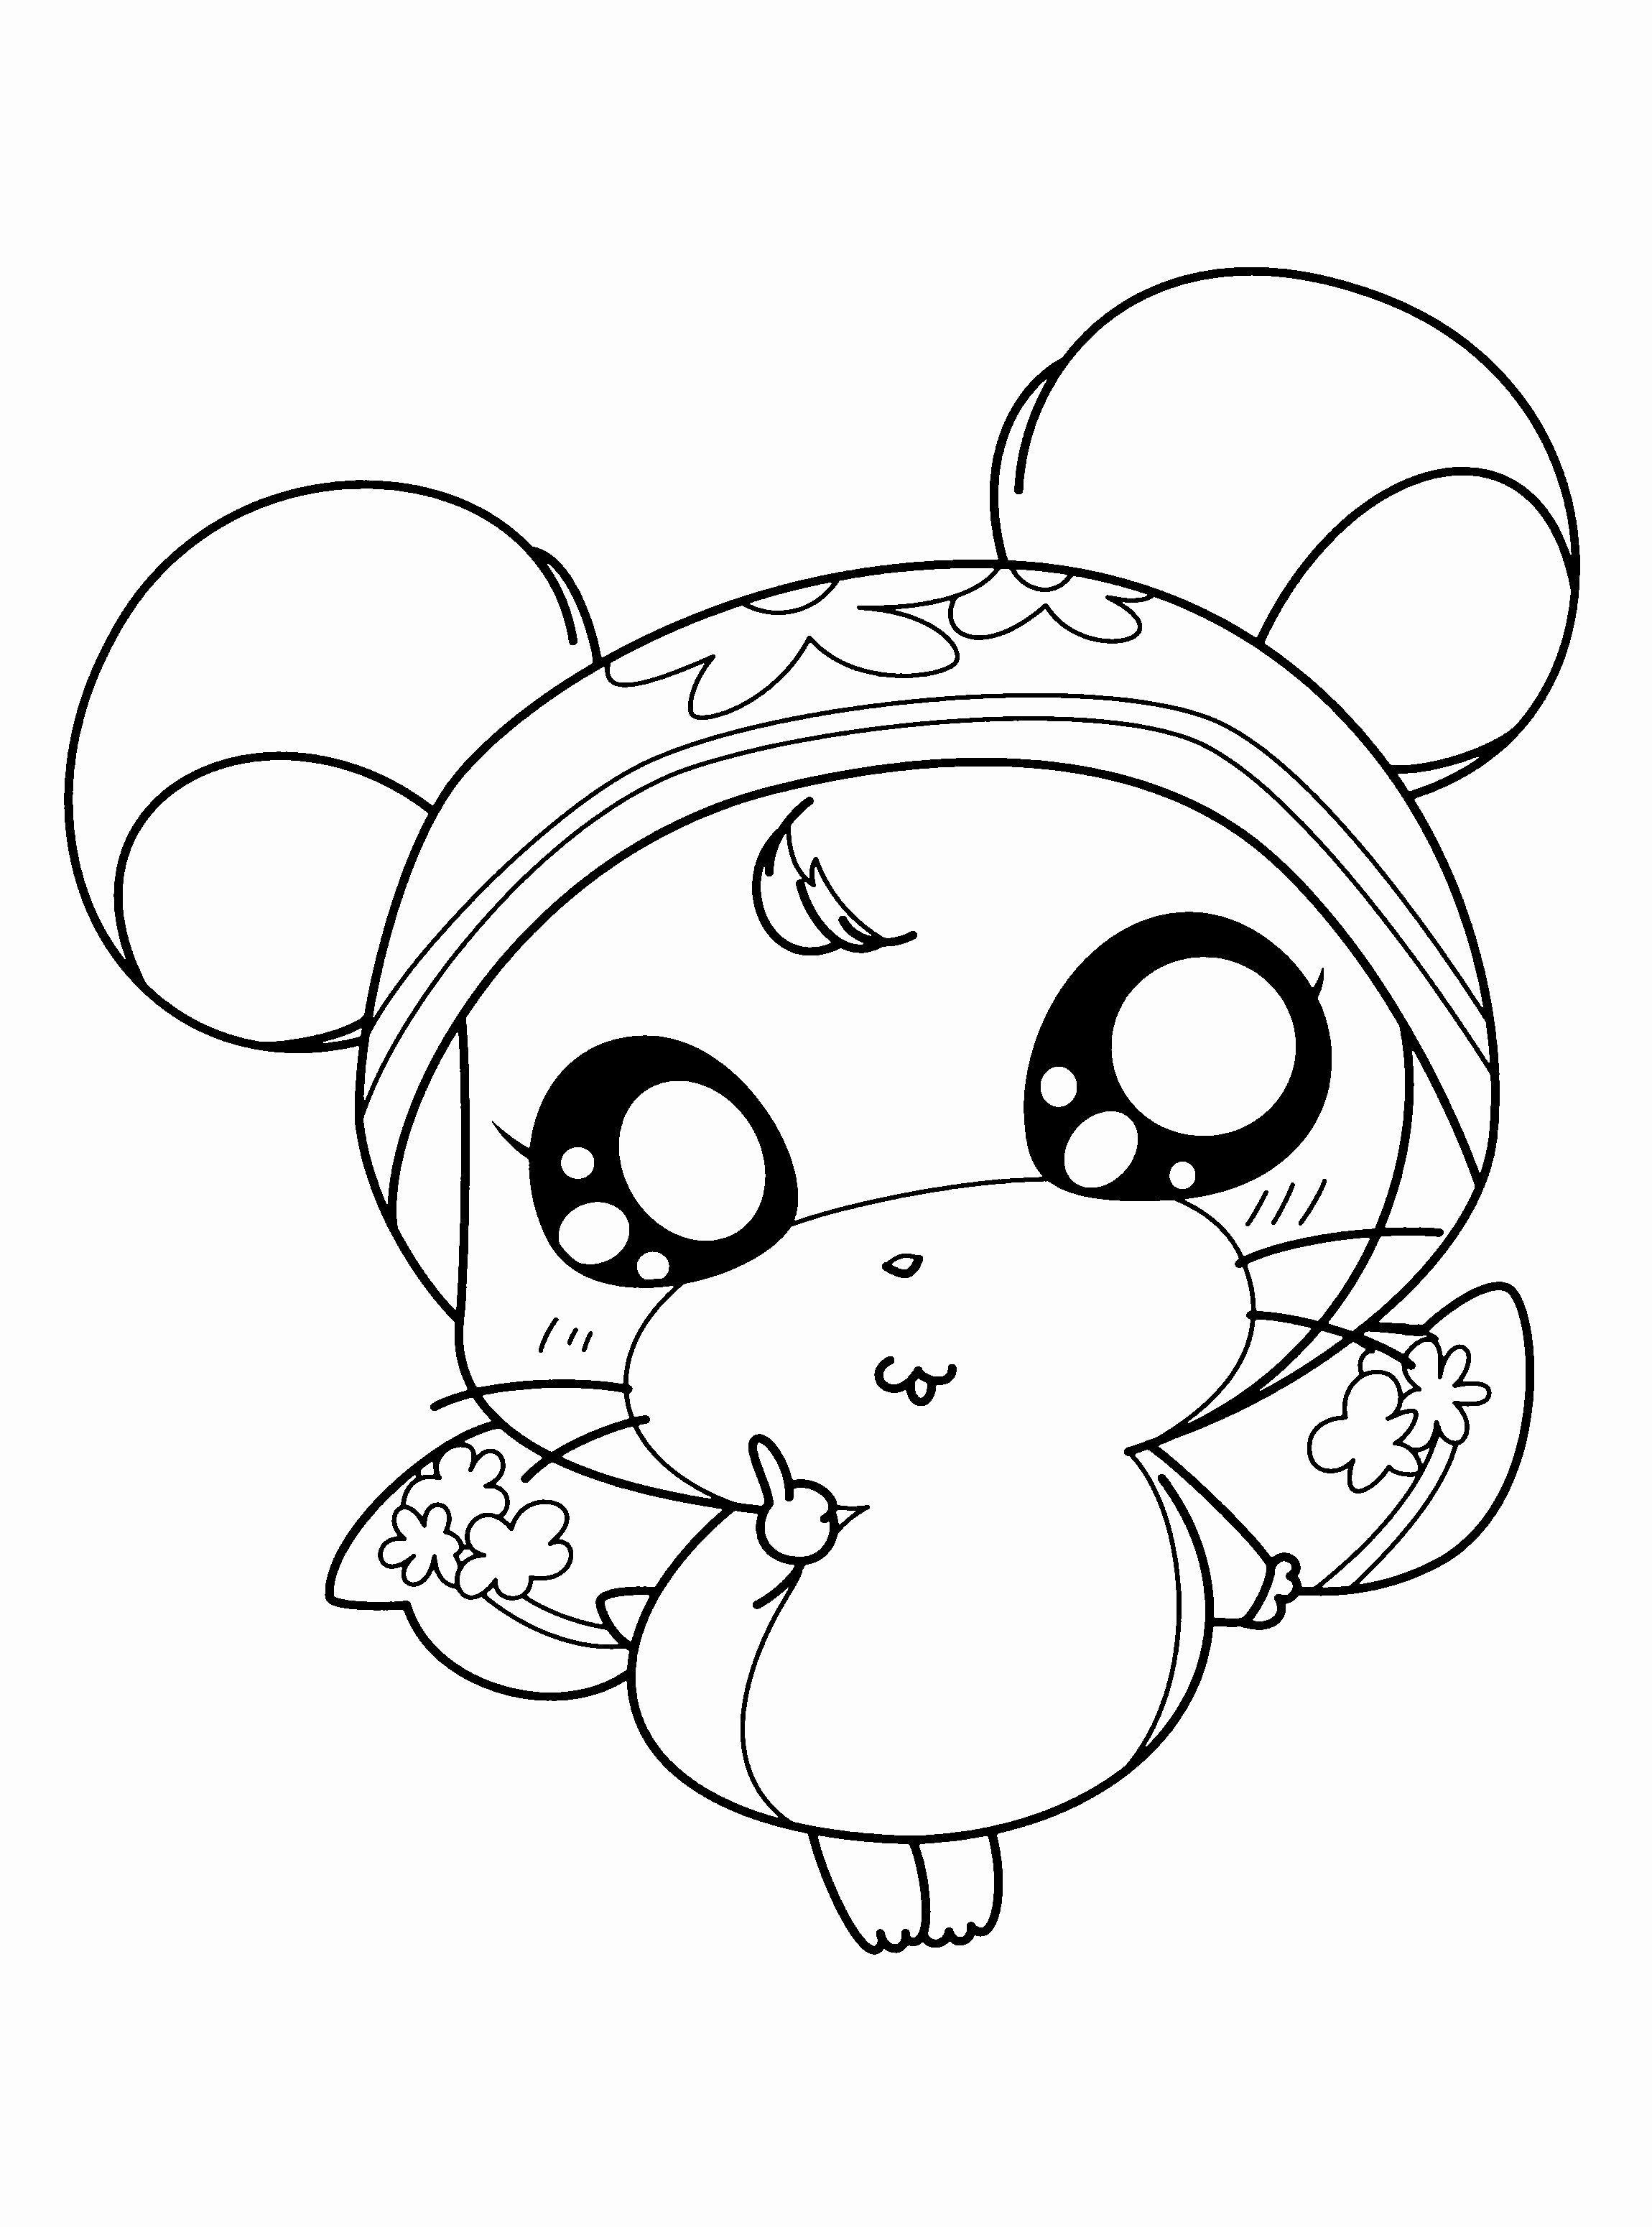 Slime Rancher Coloring Pages to Print | Free Coloring Sheets